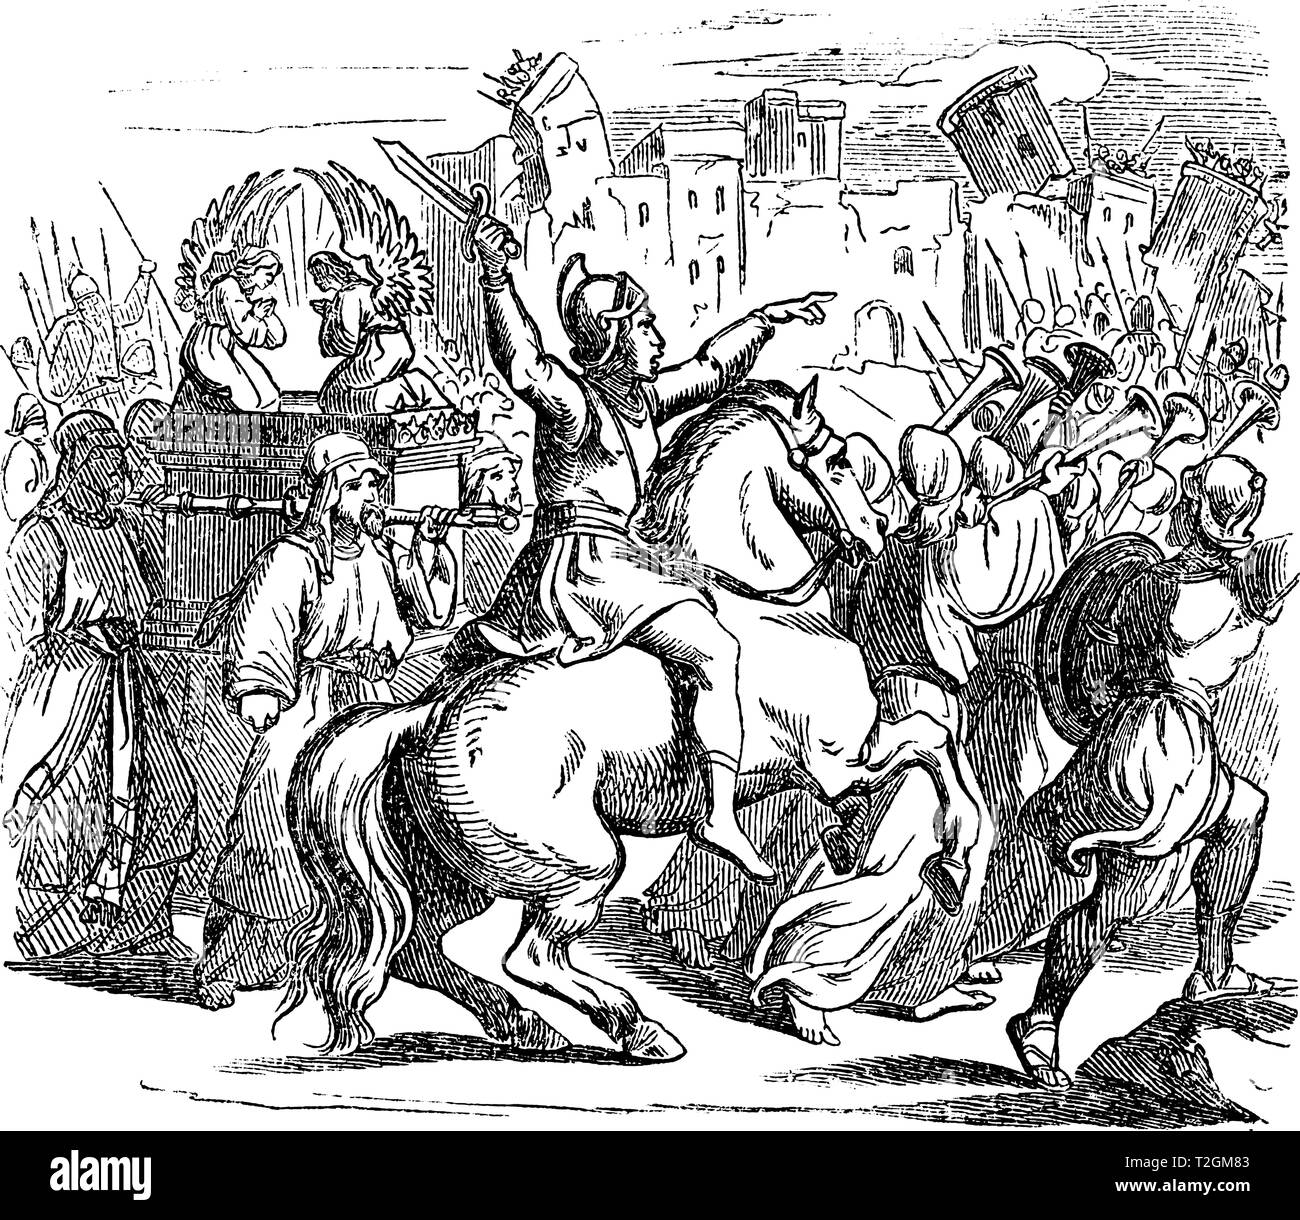 Vintage antique illustration and line drawing or engraving of biblical Israelites attacking city of Jericho. Walls falling when blowing trumpets.From  Stock Vector